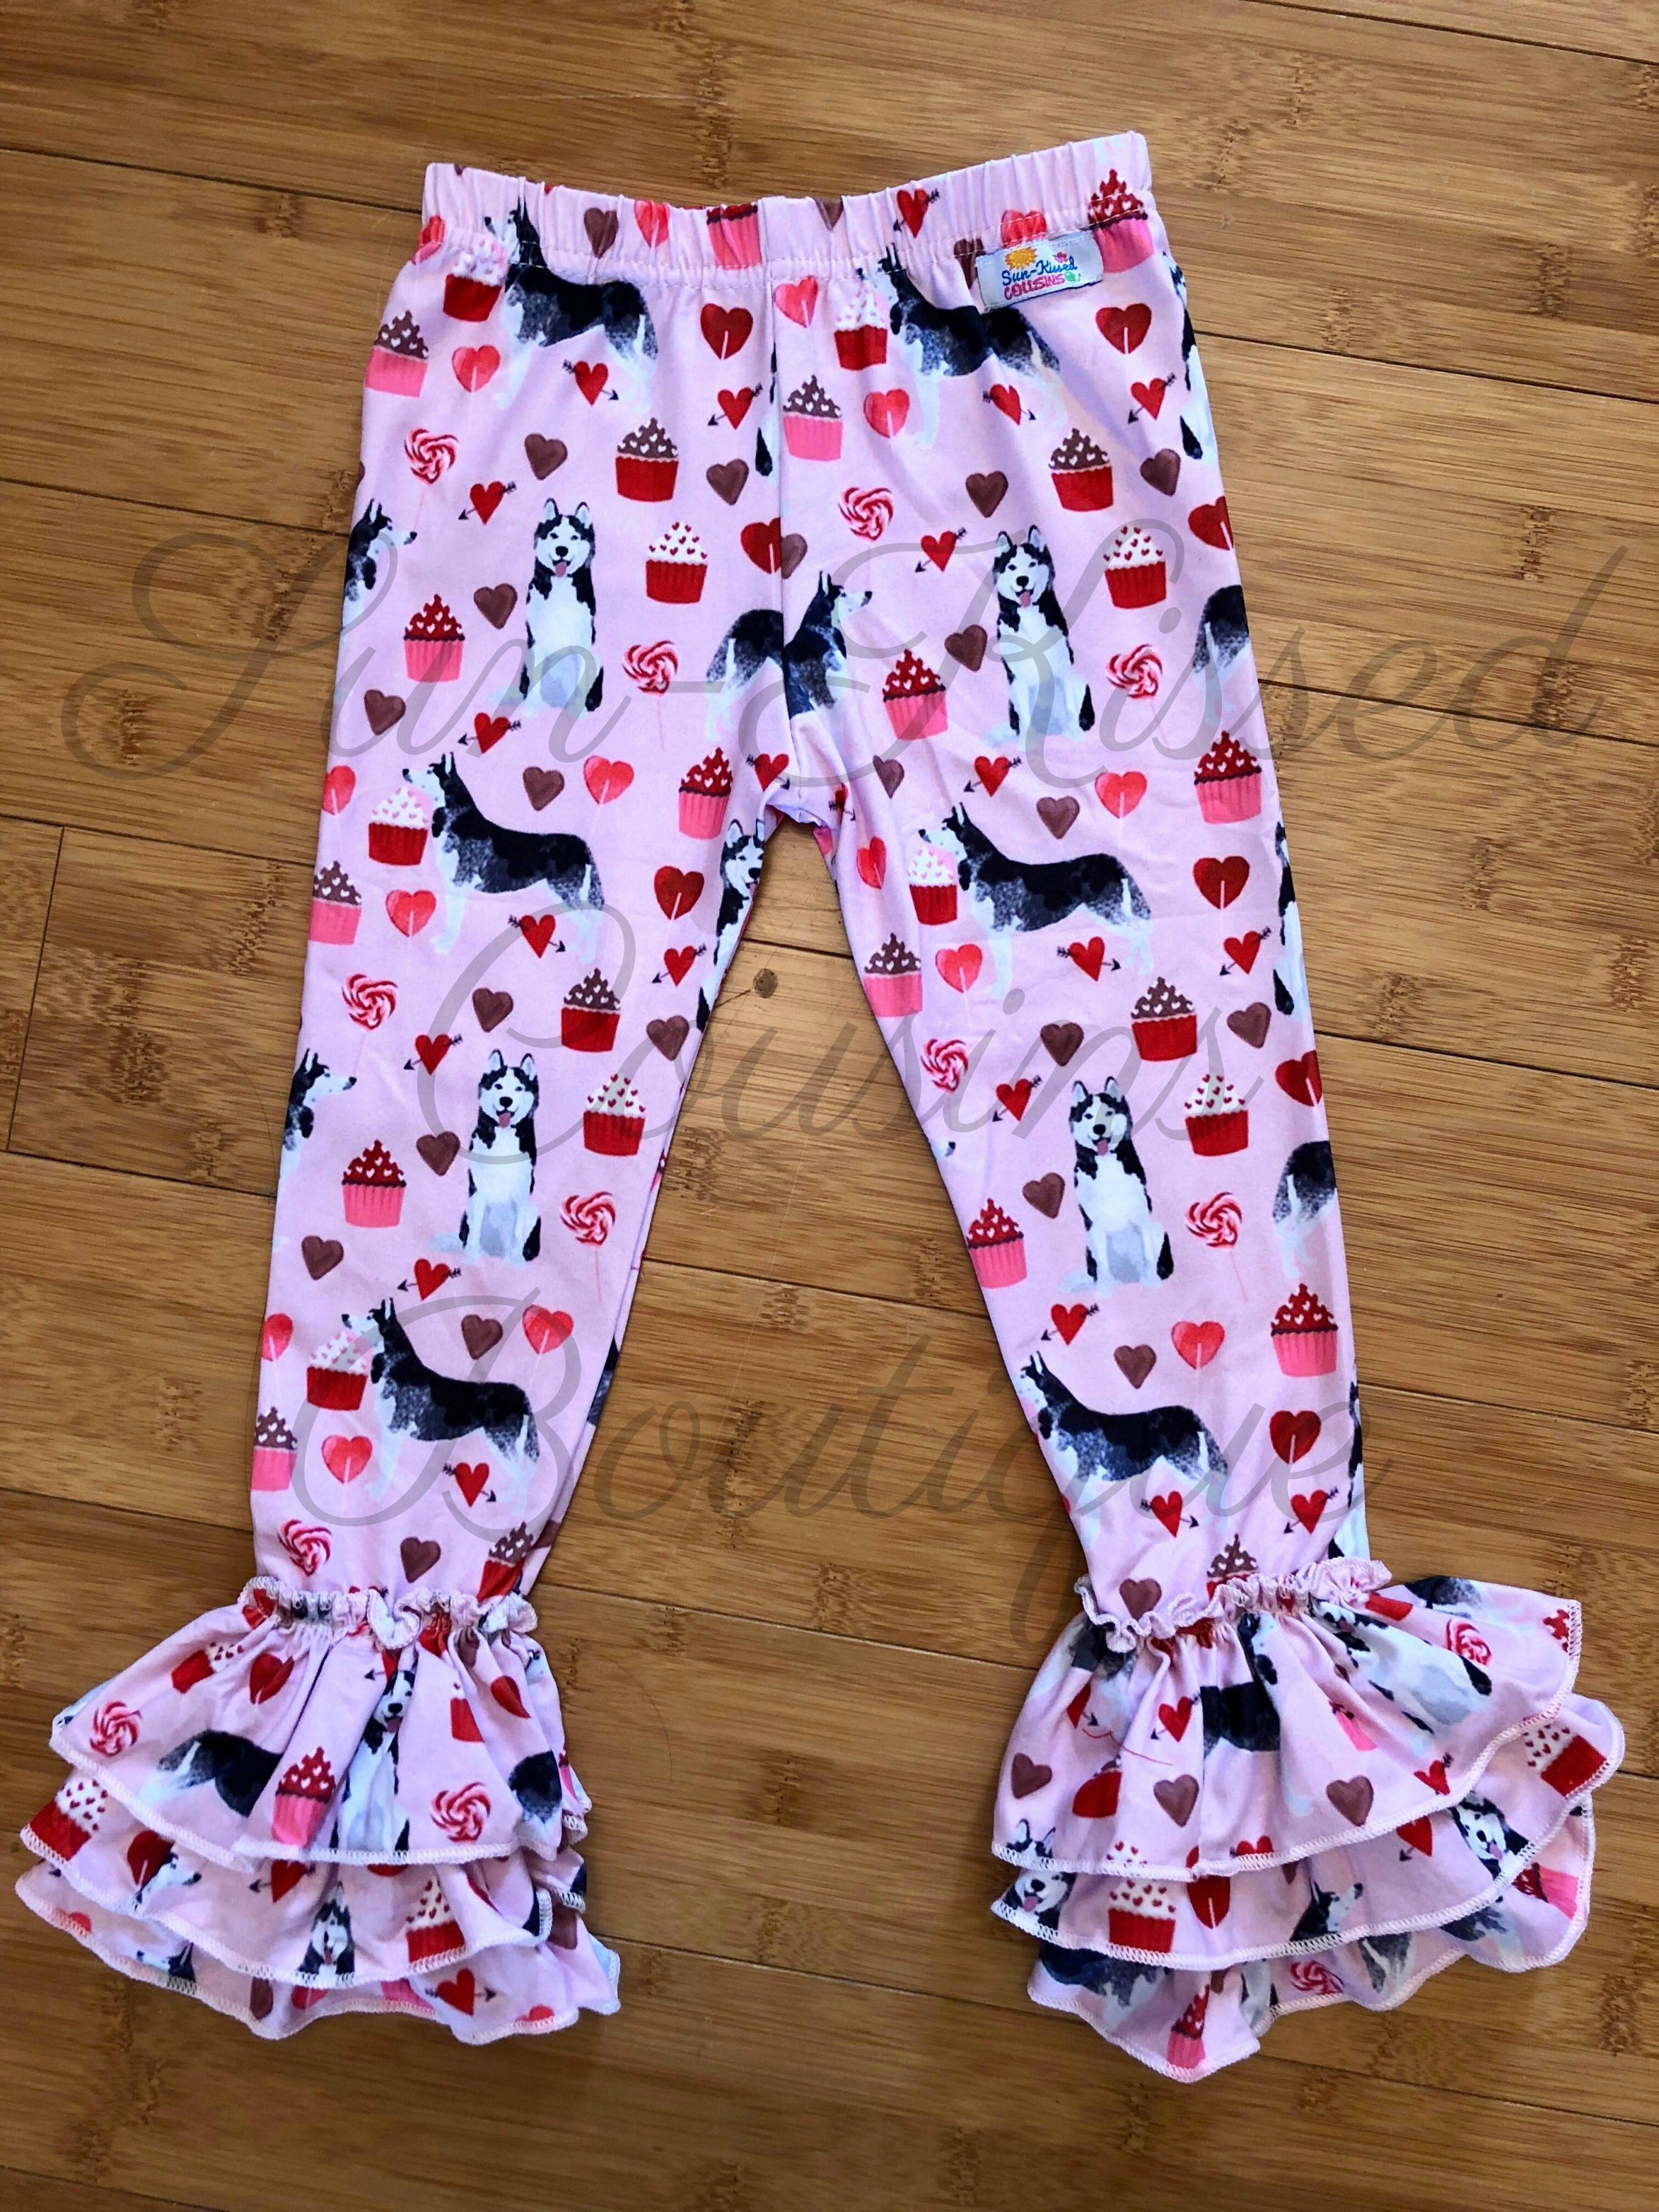 a457747af1a40 Ruffle Leggings - Valentine's Day Dogs 18m, 3T – Sun-Kissed Cousins ...